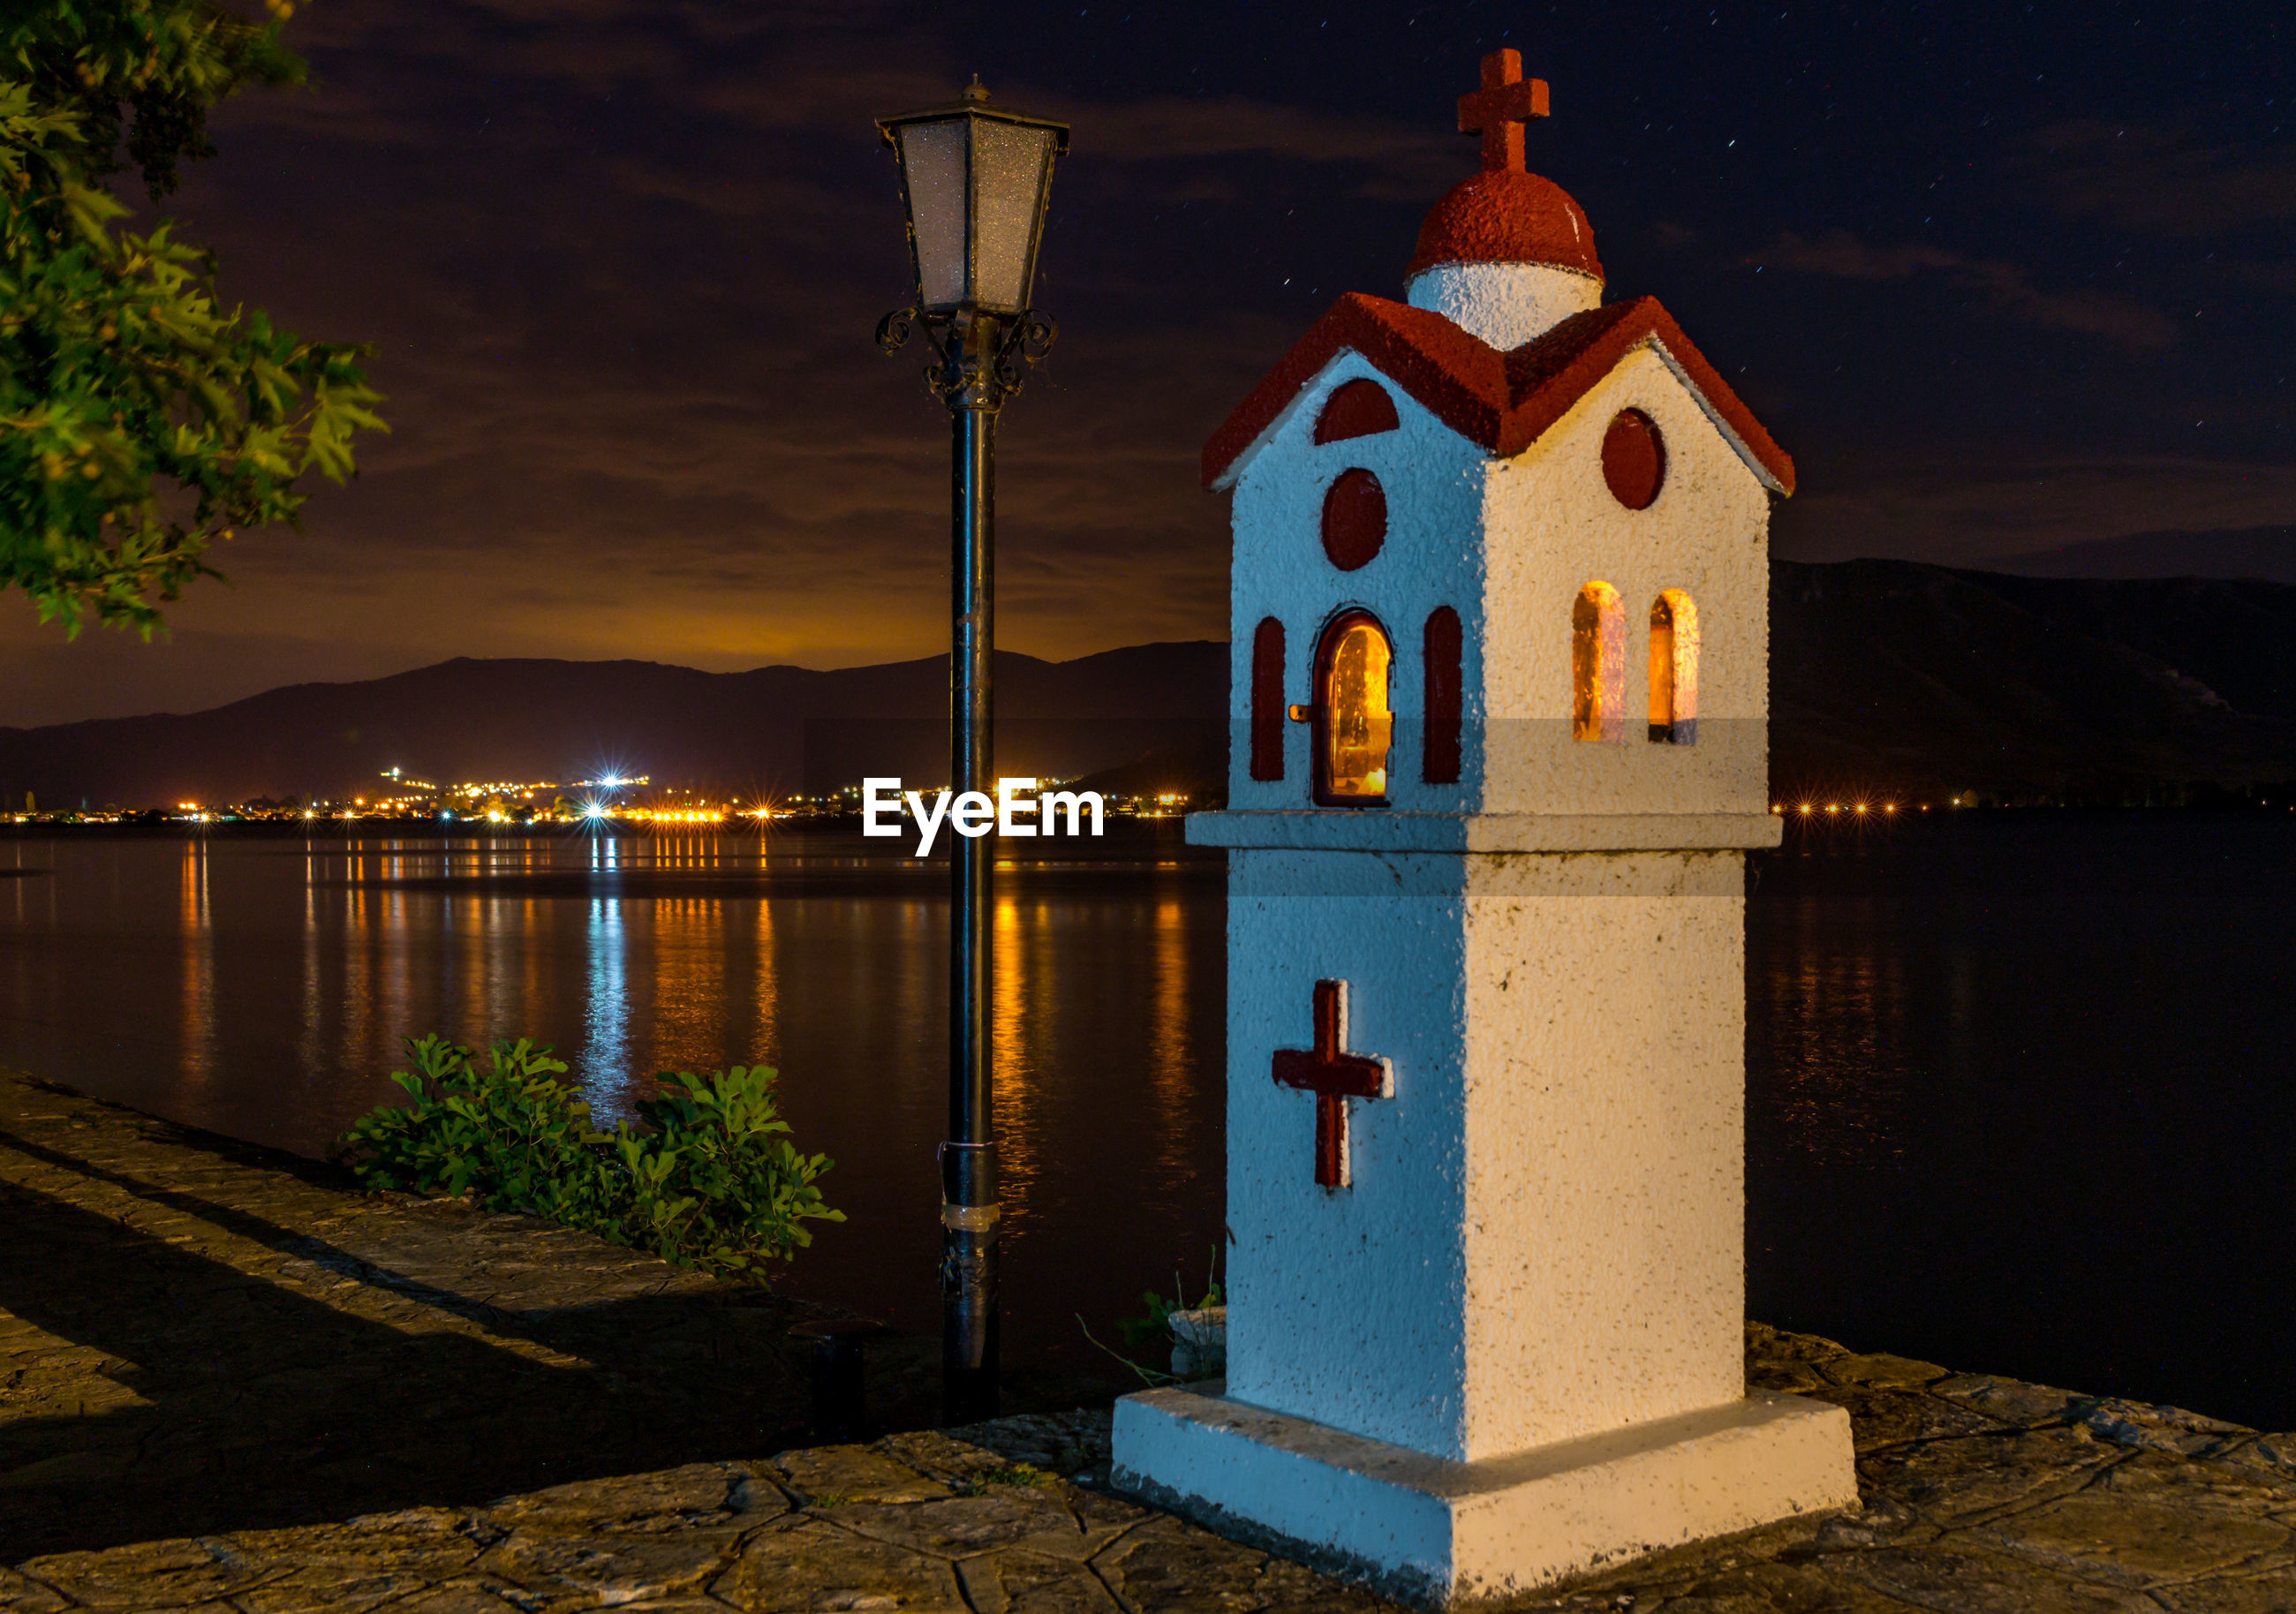 ILLUMINATED BUILDING BY LAKE AGAINST SKY